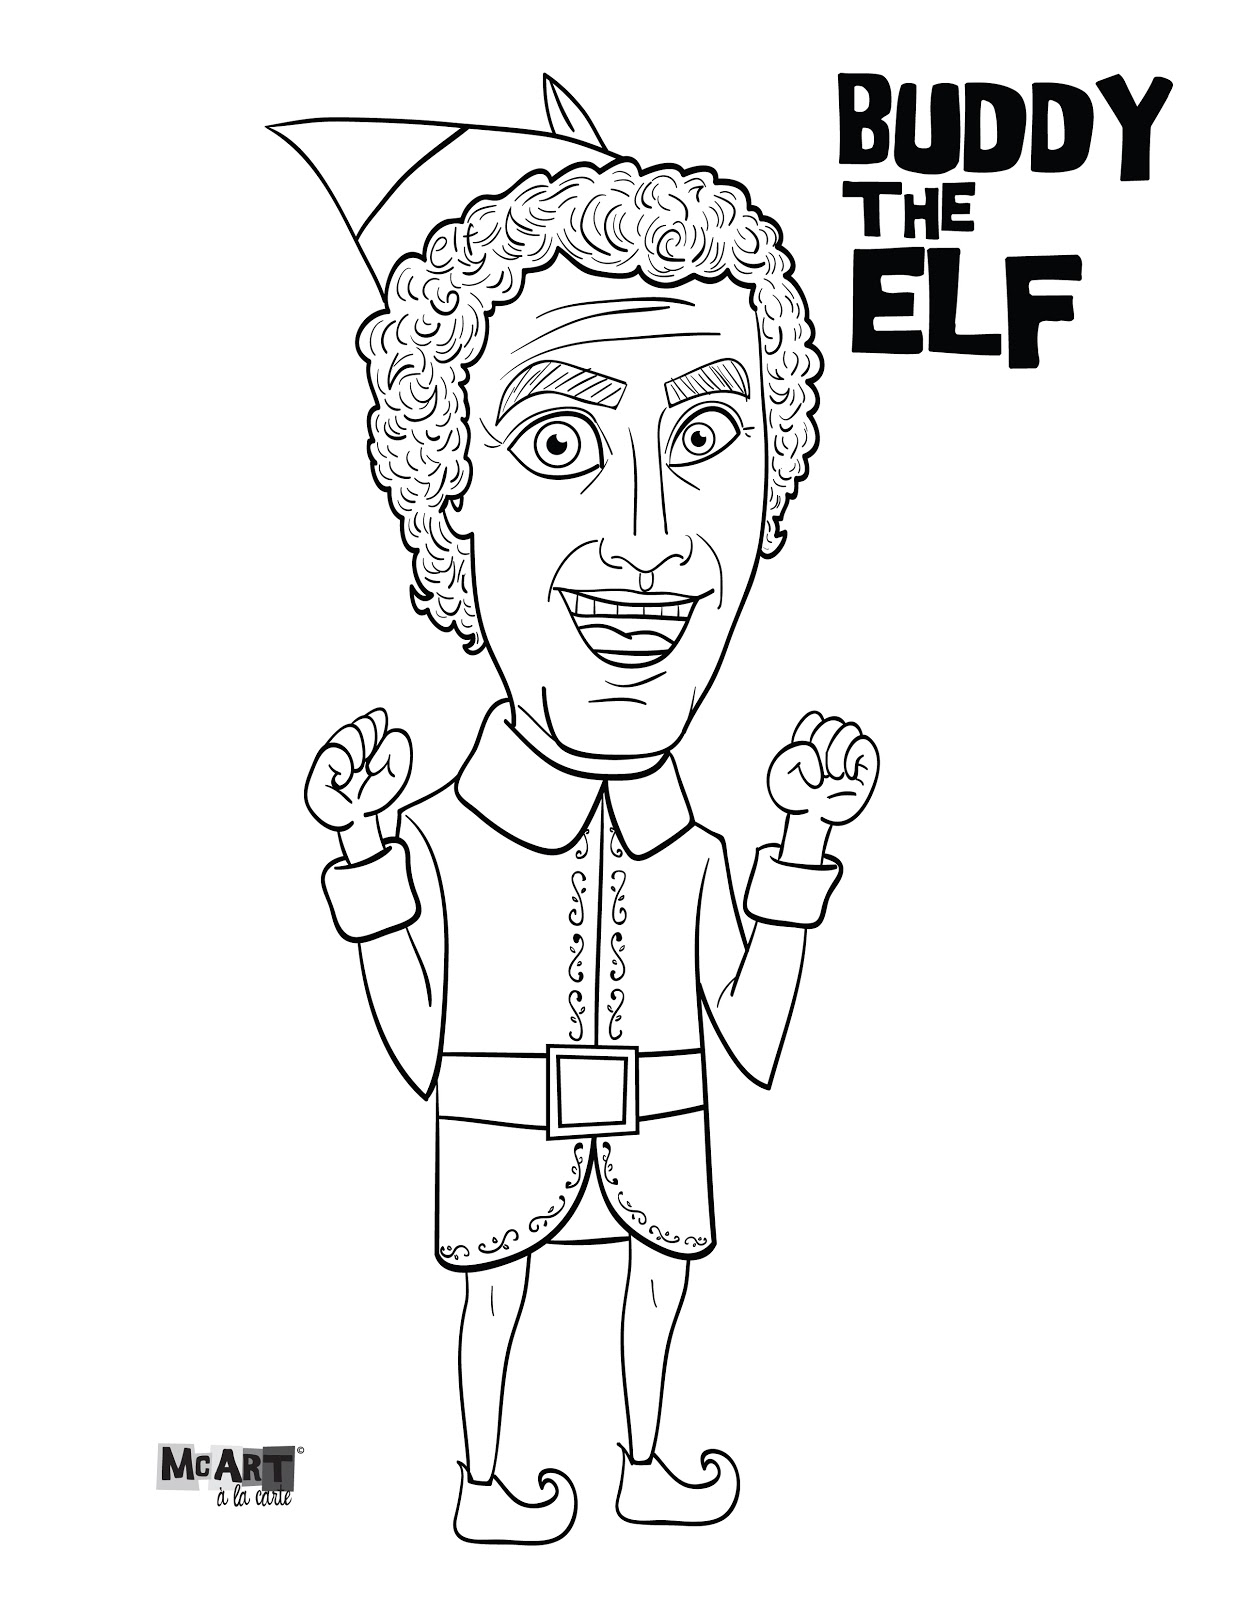 Christmas Coloring Pages Of Elves With Elf Book Buddy The On Shelf Colouring